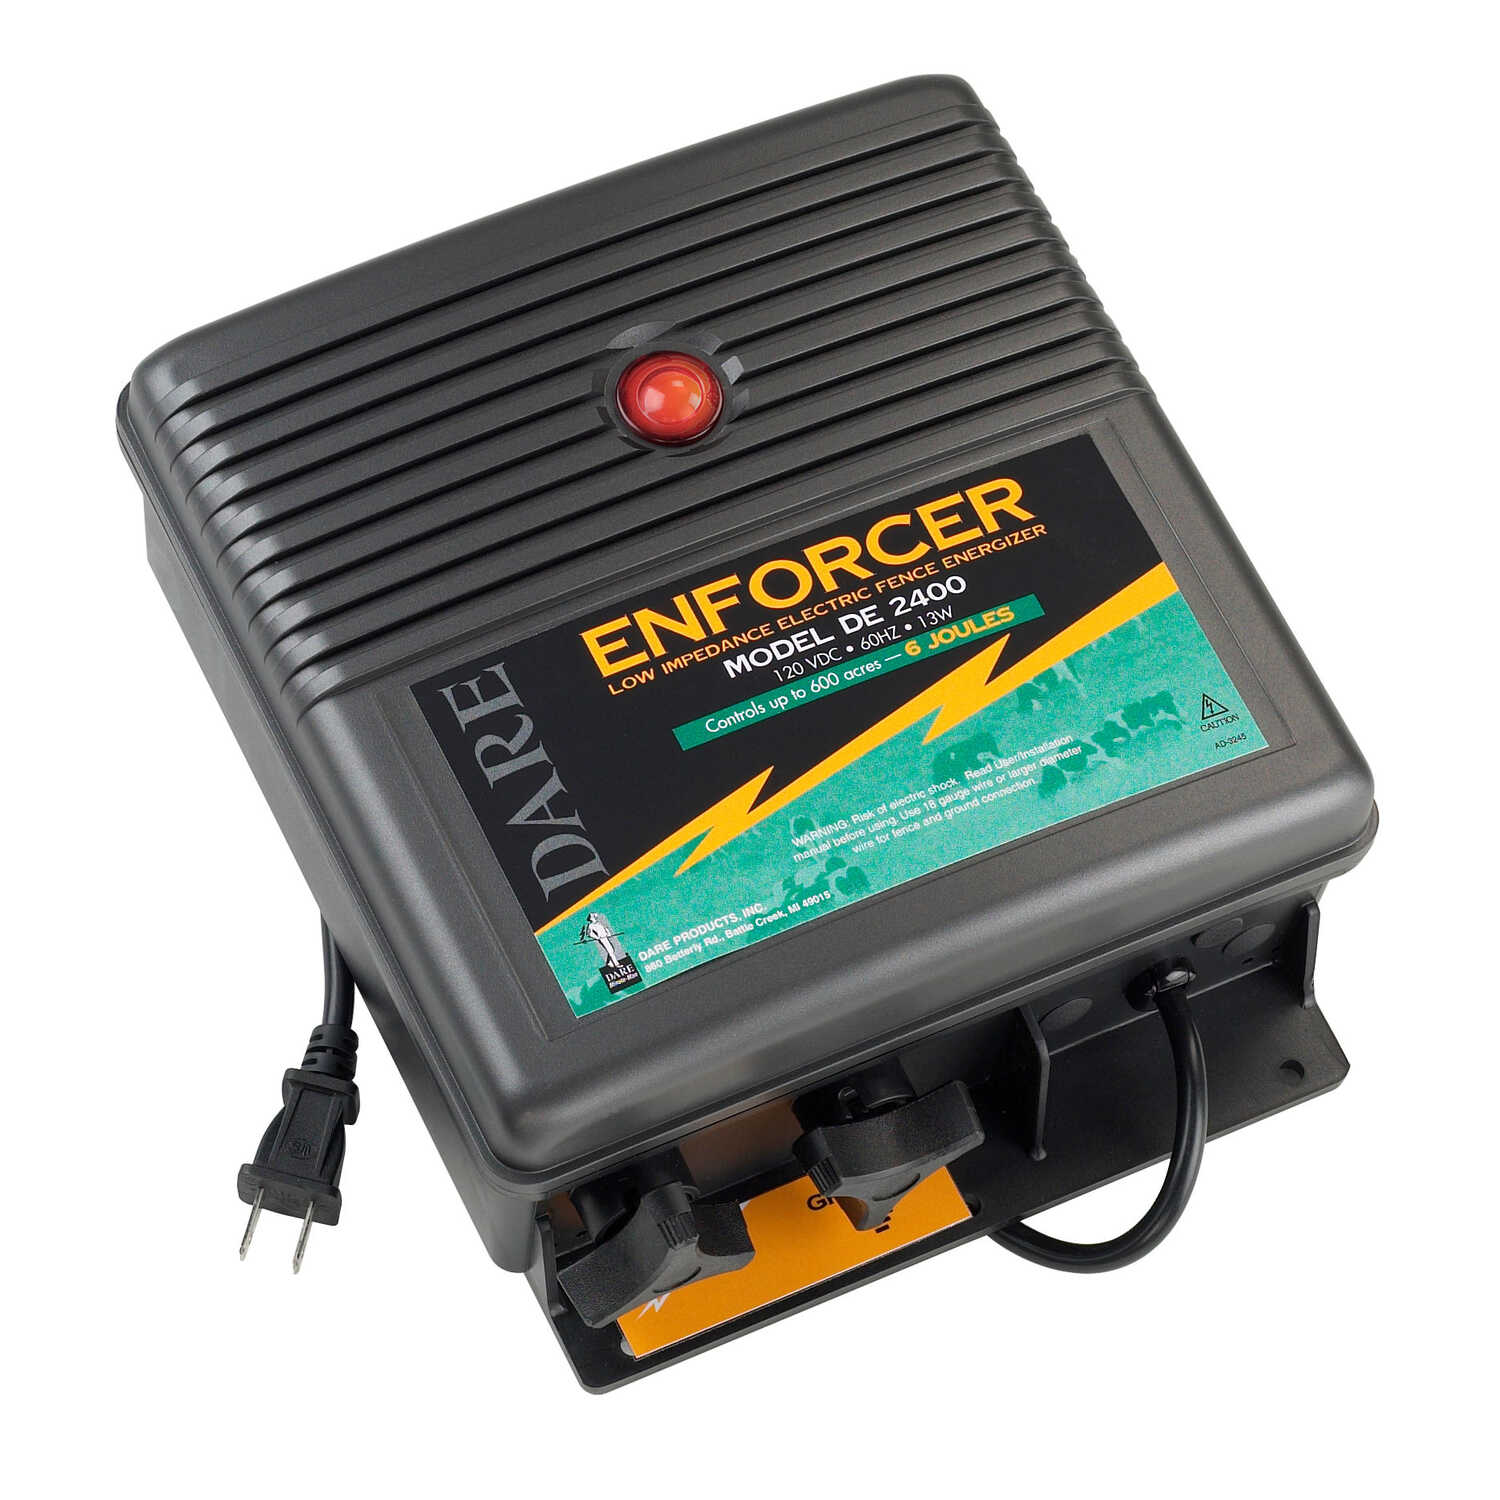 Dare Products  Enforcer  110 volt Electric-Powered  Fence Energizer  600 acres  Black